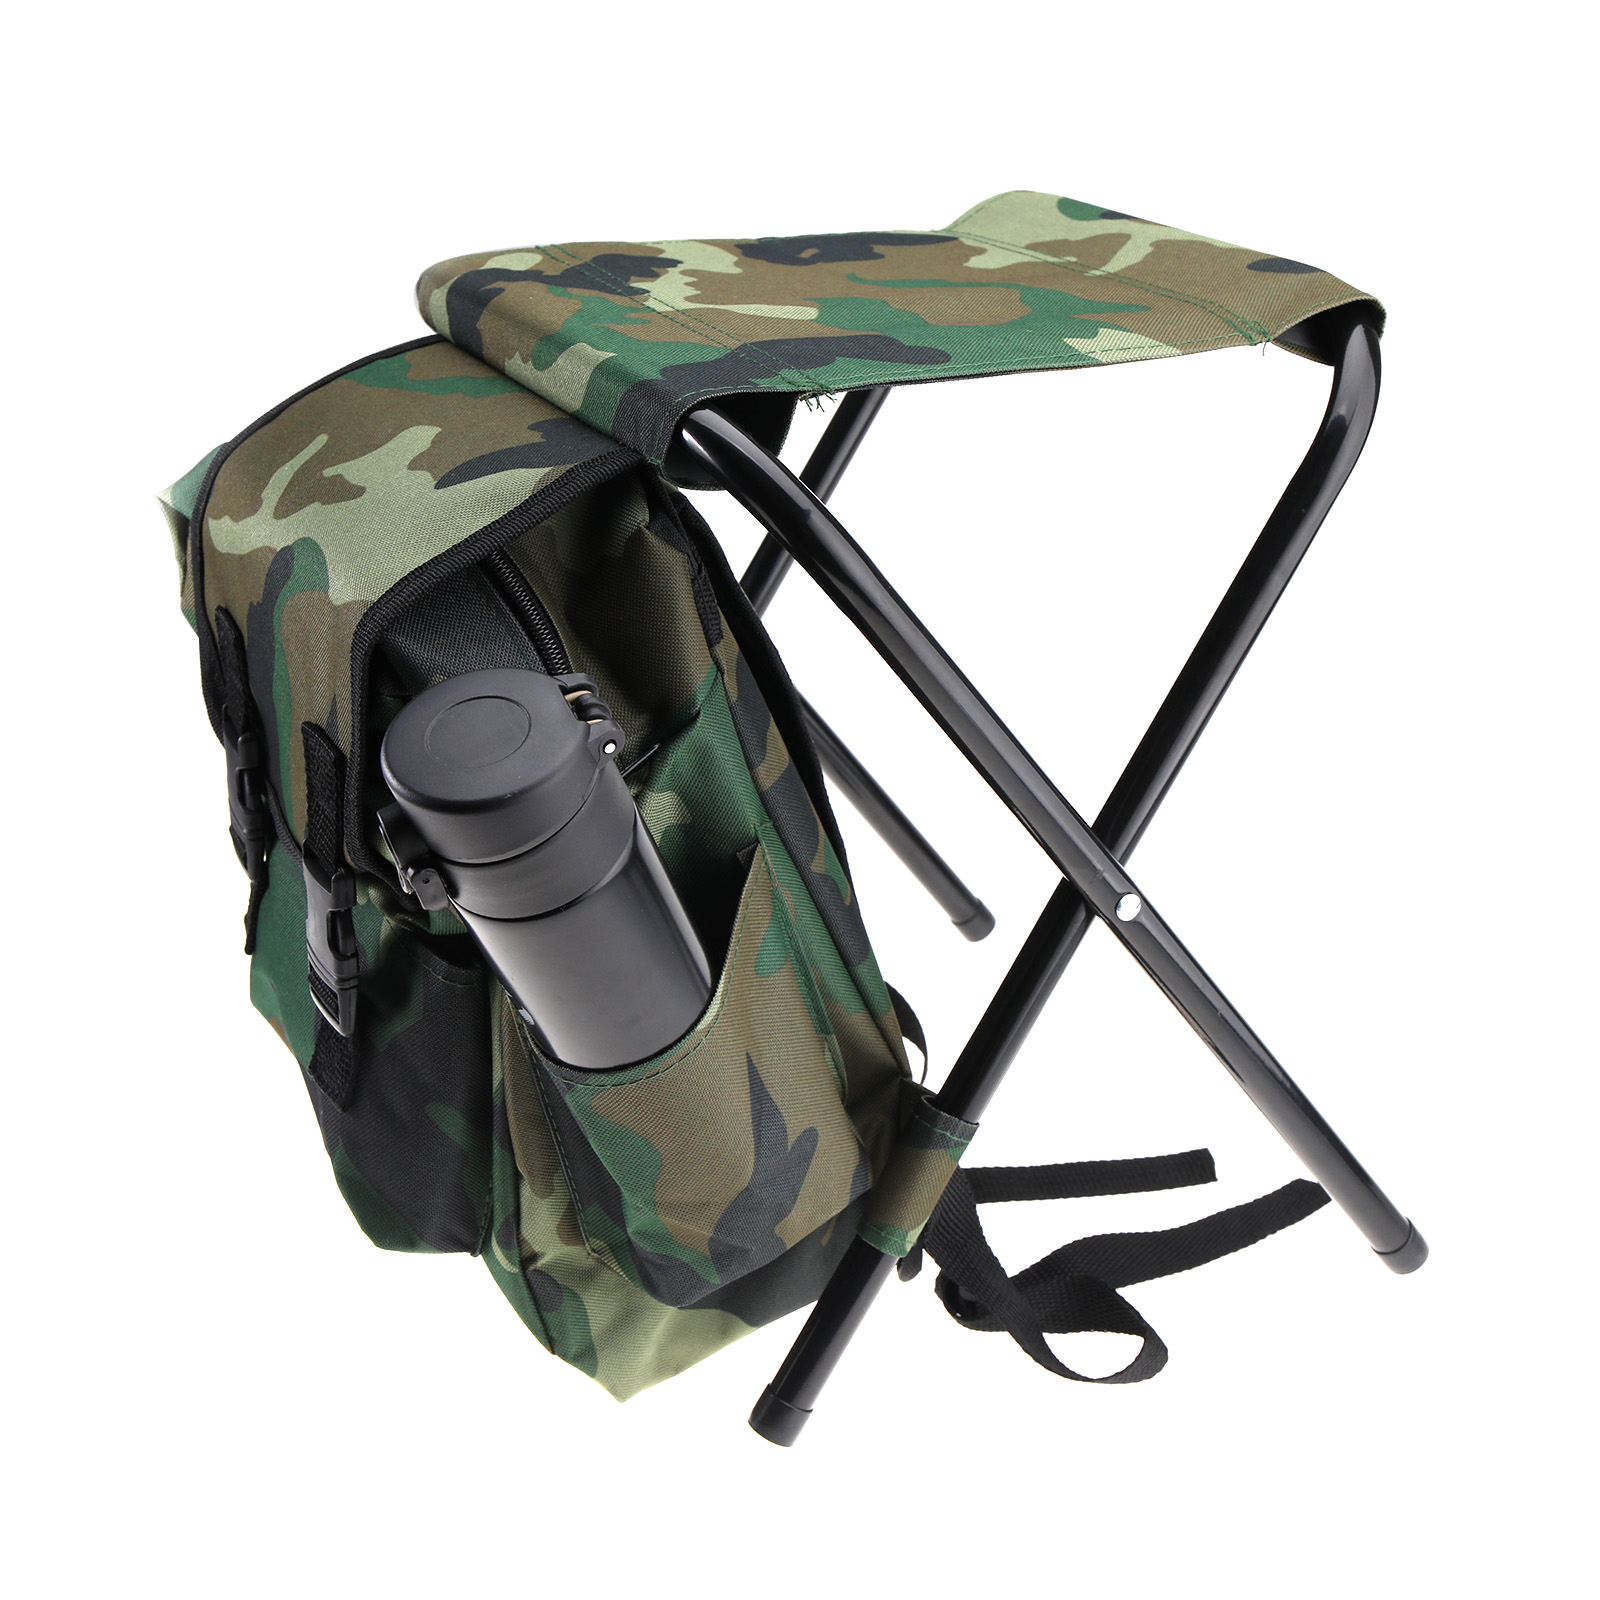 fishing chair rucksack covers for hire alberton foldable outdoor stool backpack travel